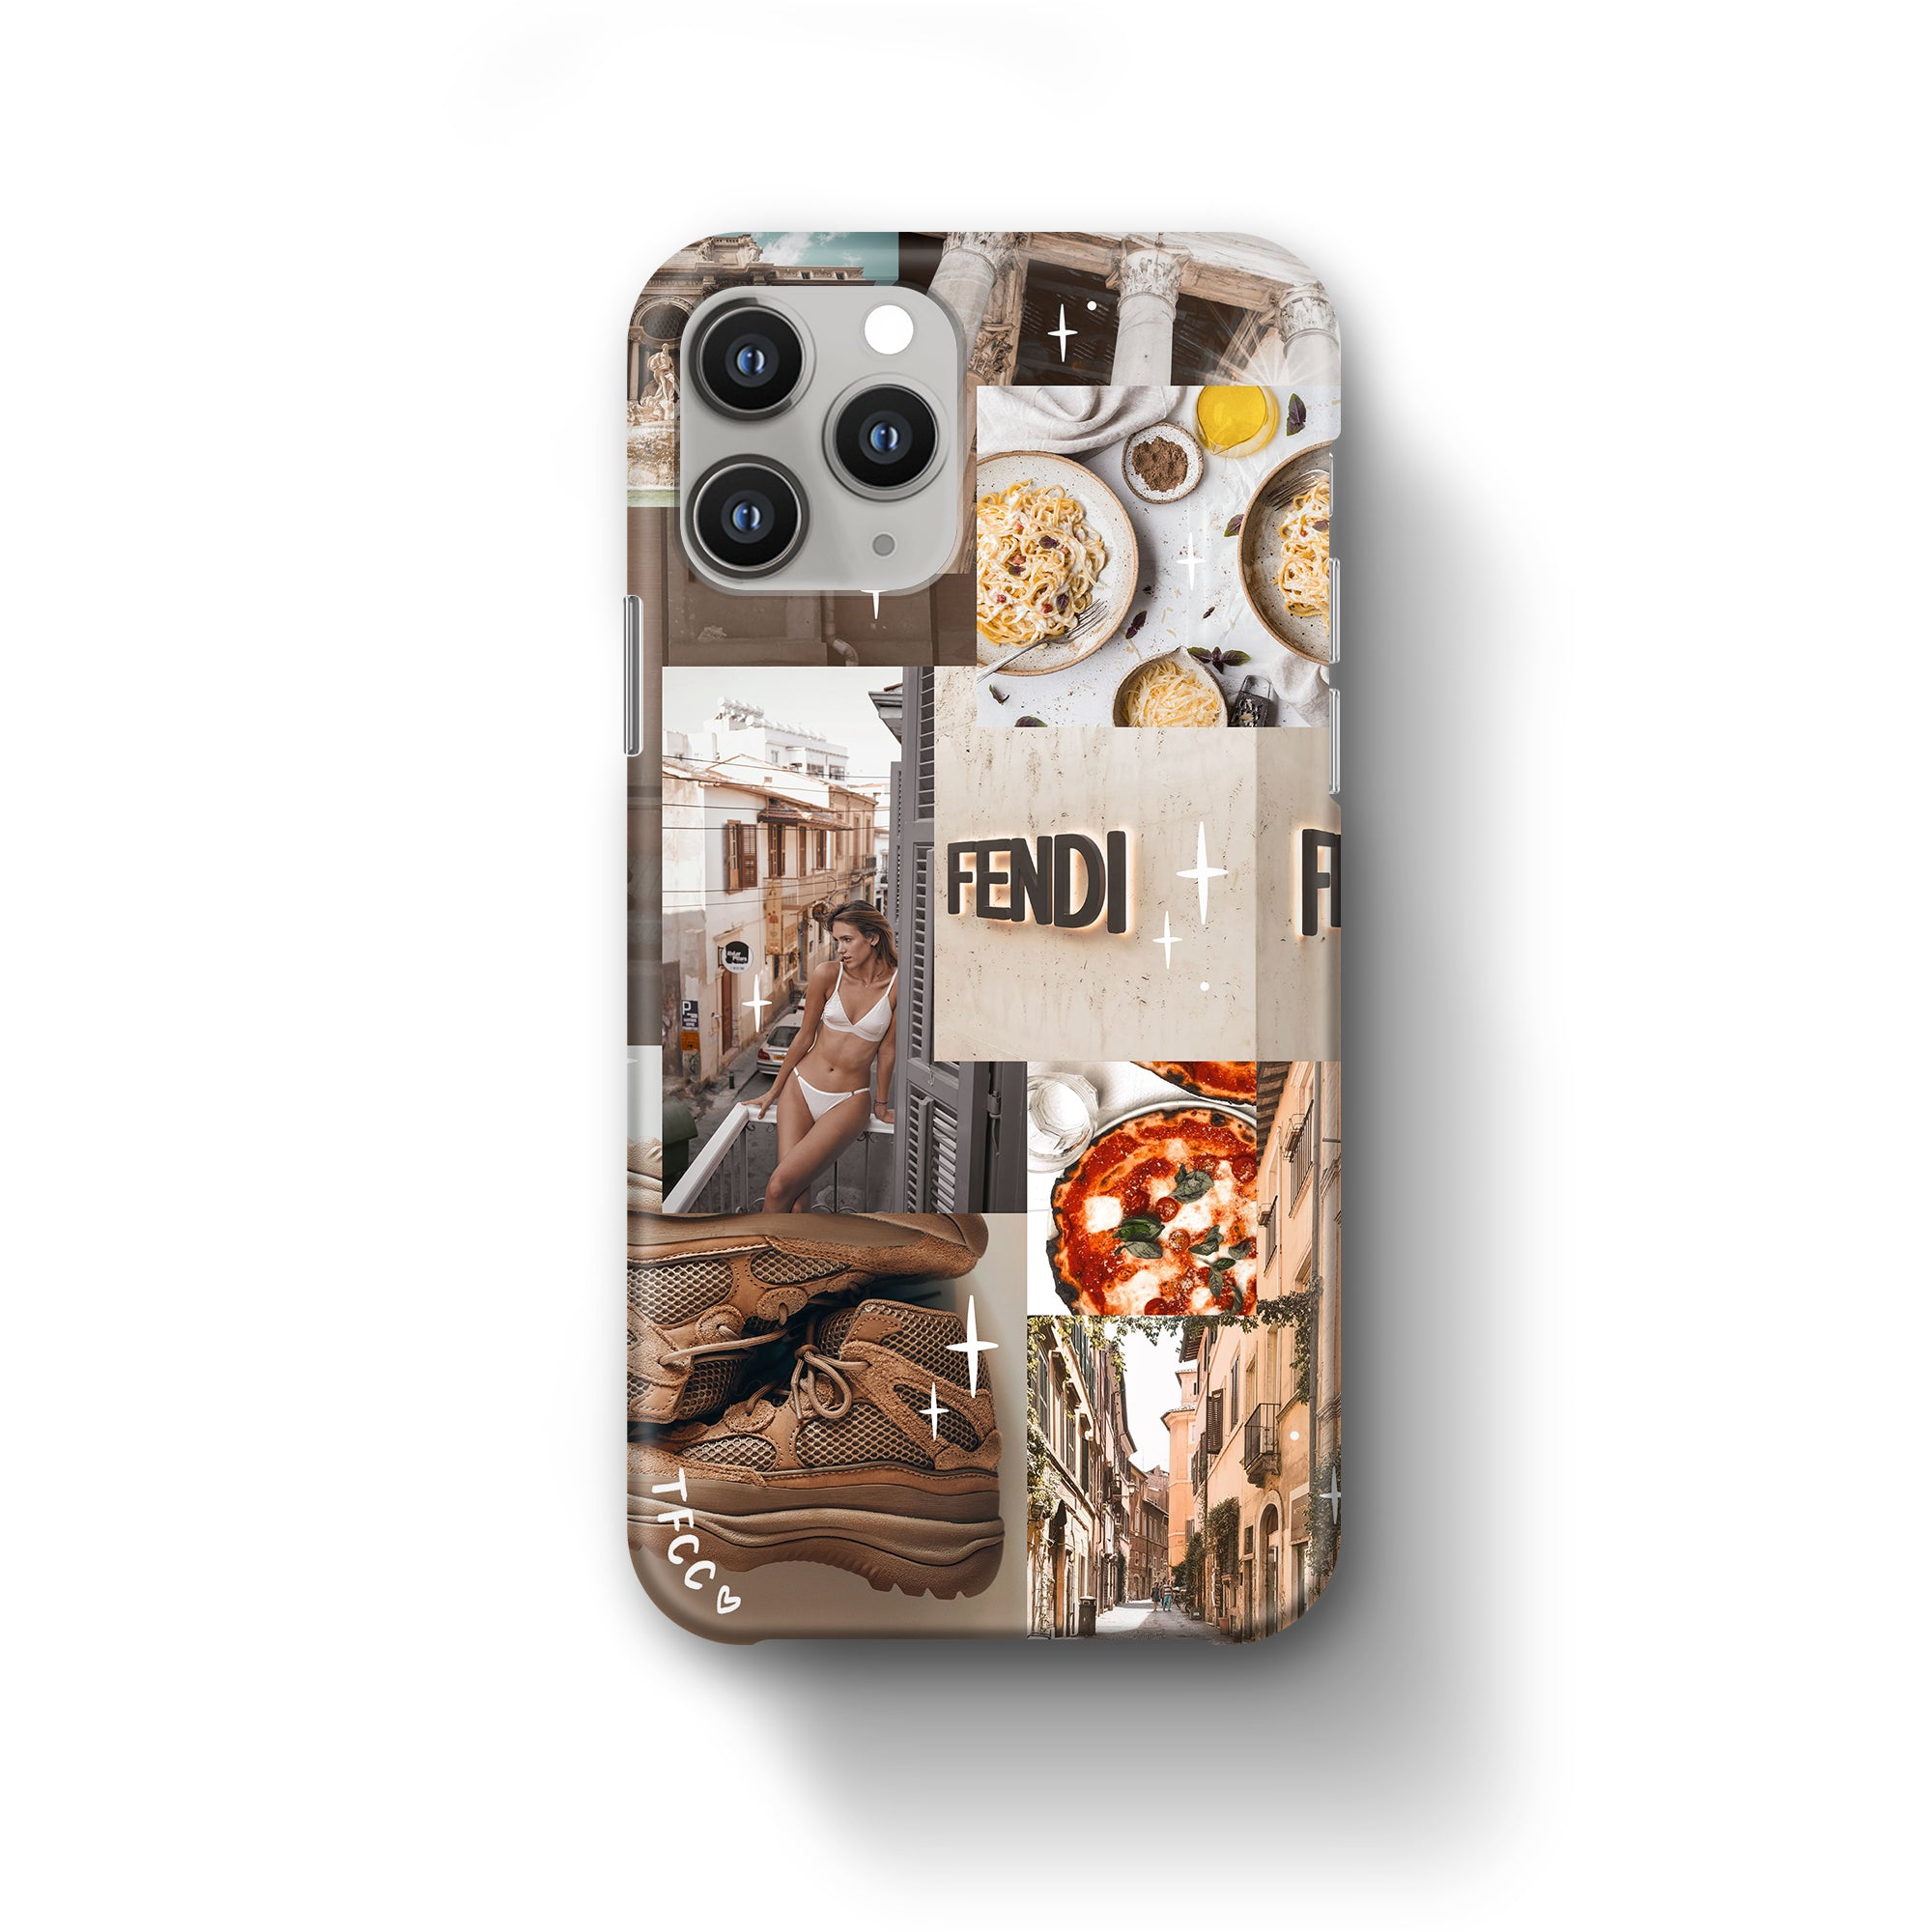 FF COLLAGE CASE - thefonecasecompany